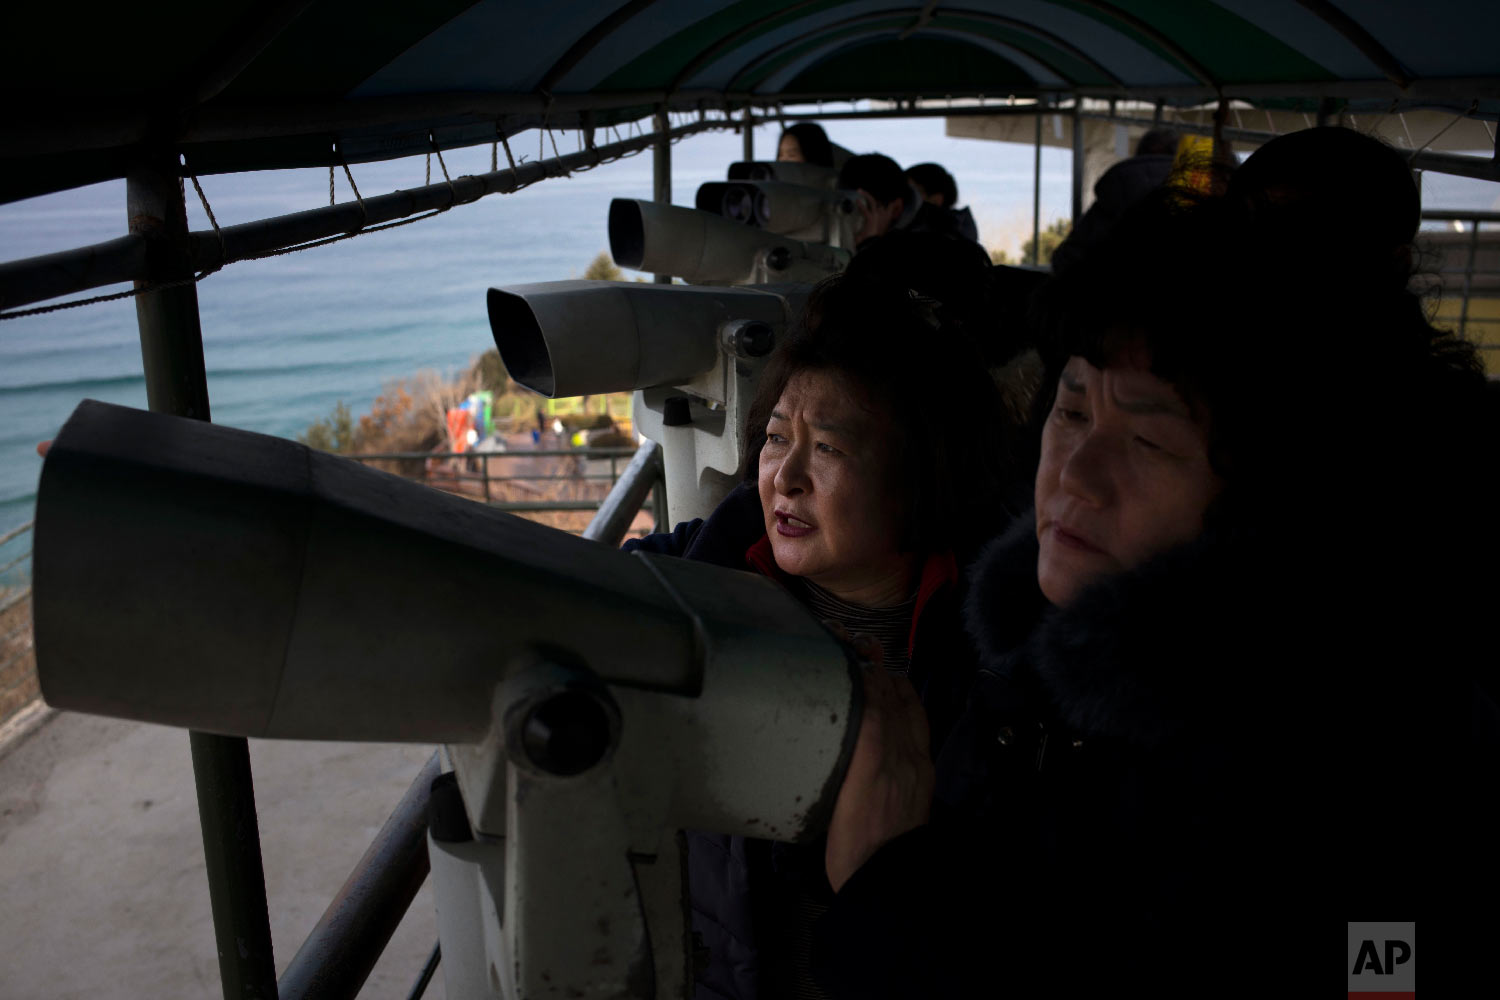 Visitors use binoculars to view North Korea from the Goseong Unification Observatory in Goseong, South Korea, Monday, Feb. 19, 2018. (AP Photo/Jae C. Hong)